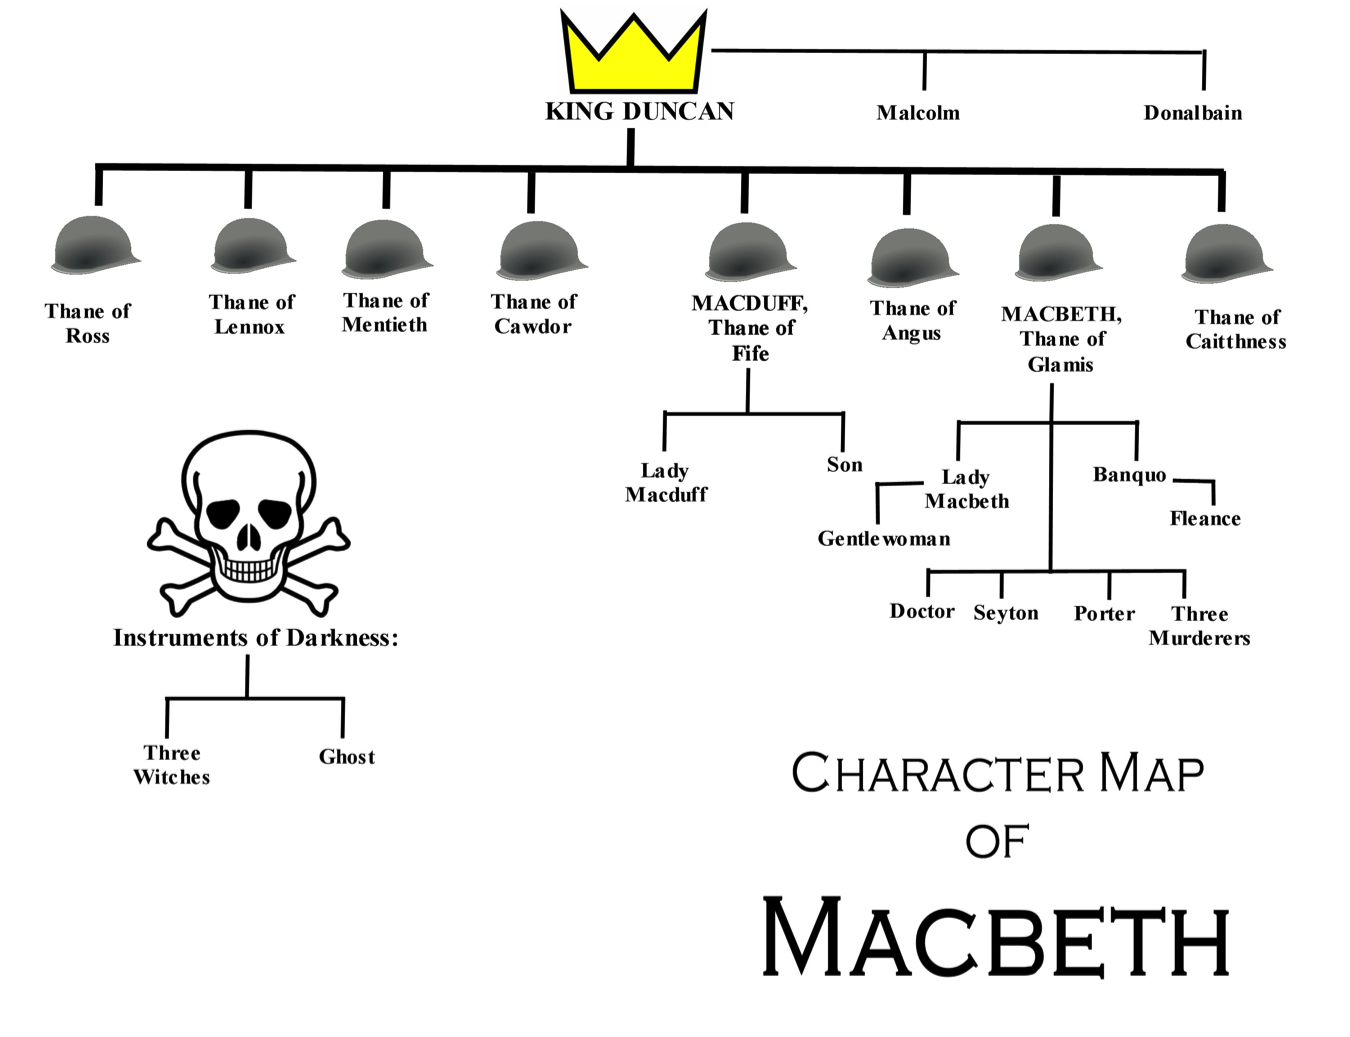 a detailed analysis of the characters macbeth duncan malcolm and edward in macbeth Macbeth: list of characters 6 macbeth: (character analysis) ♦ malcolm banquo raises suspicions that macbeth killed duncan macbeth hires two men to kill.